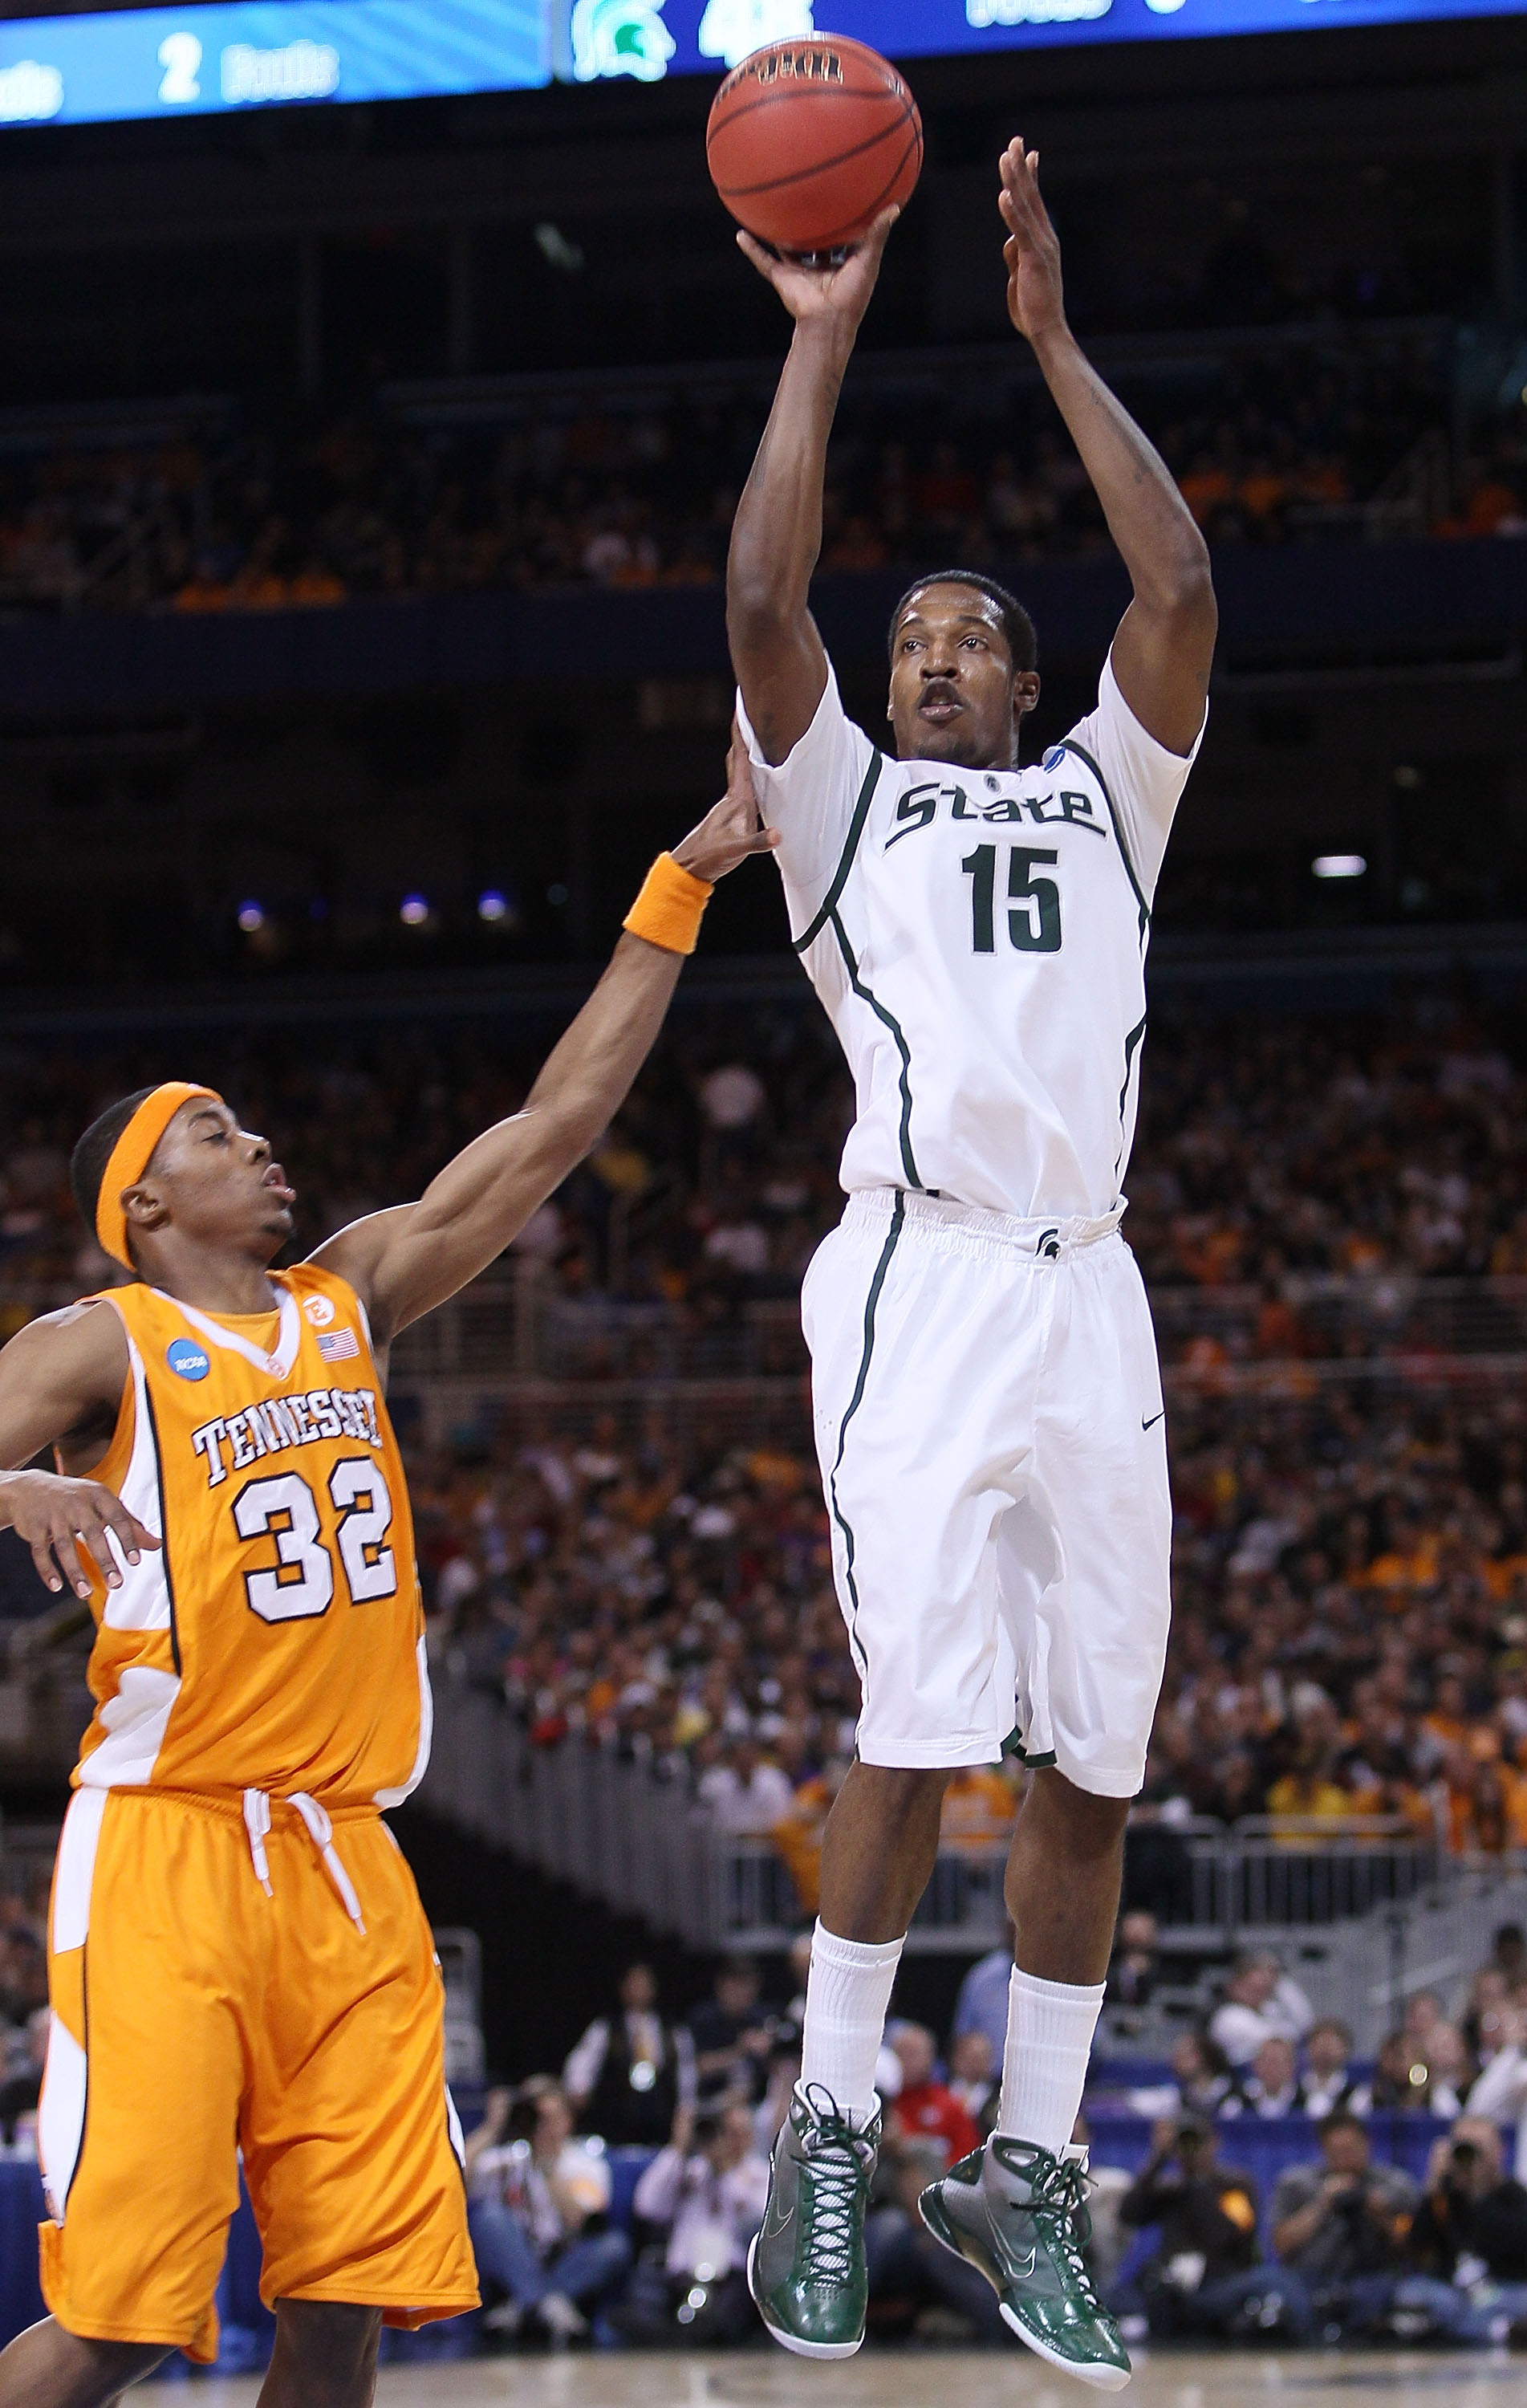 ST. LOUIS - MARCH 28:  Durrell Summers #15 of the Michigan State Spartans takes a shot as Scotty Hopson #32 of the Tennessee Volunteers defends during the midwest regional final of the 2010 NCAA men's basketball tournament at the Edward Jones Dome on Marc